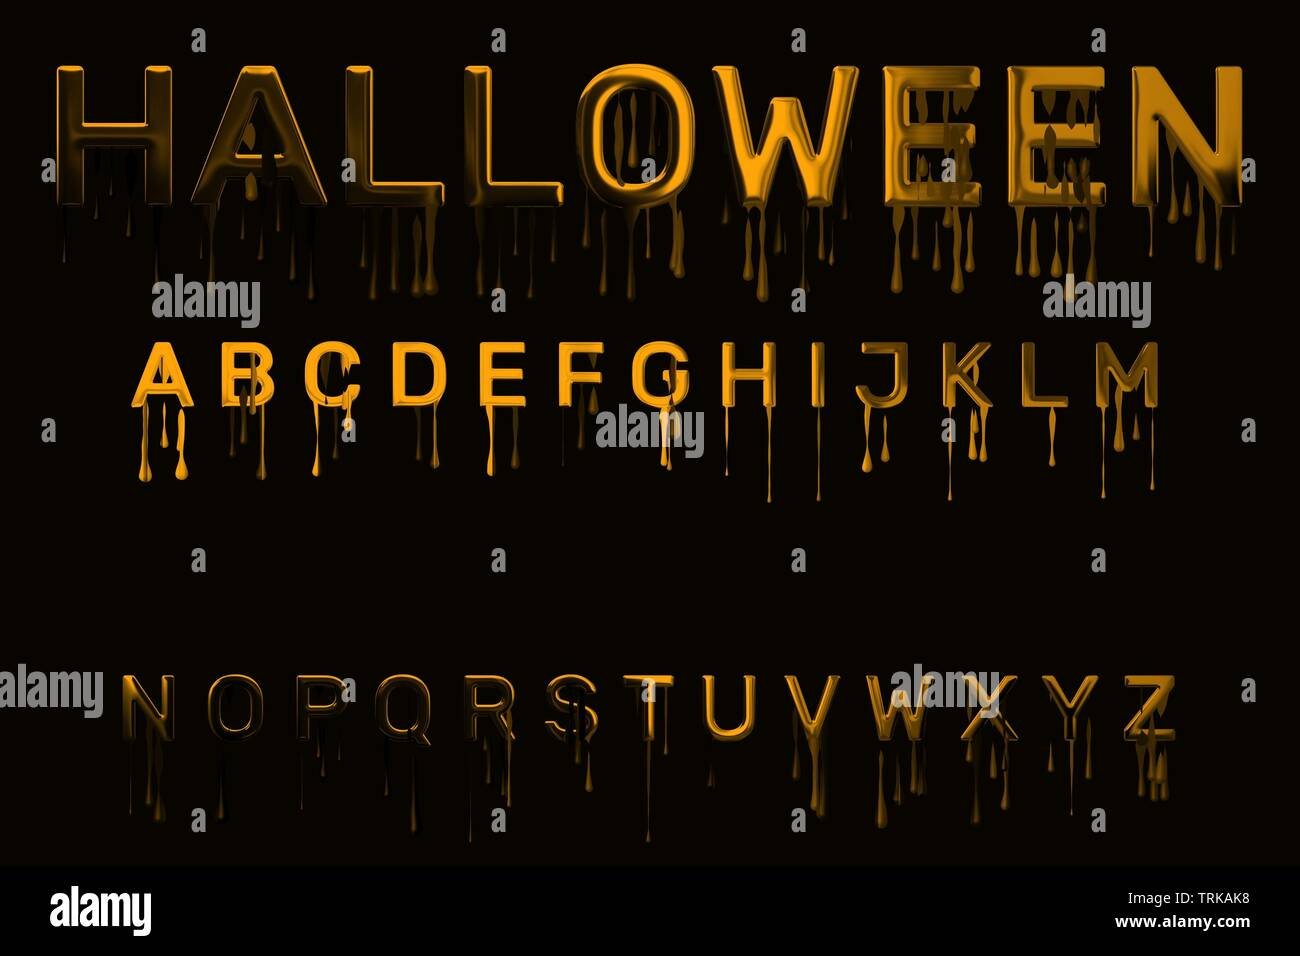 Halloween font, glossy alphabet set with orange dripping